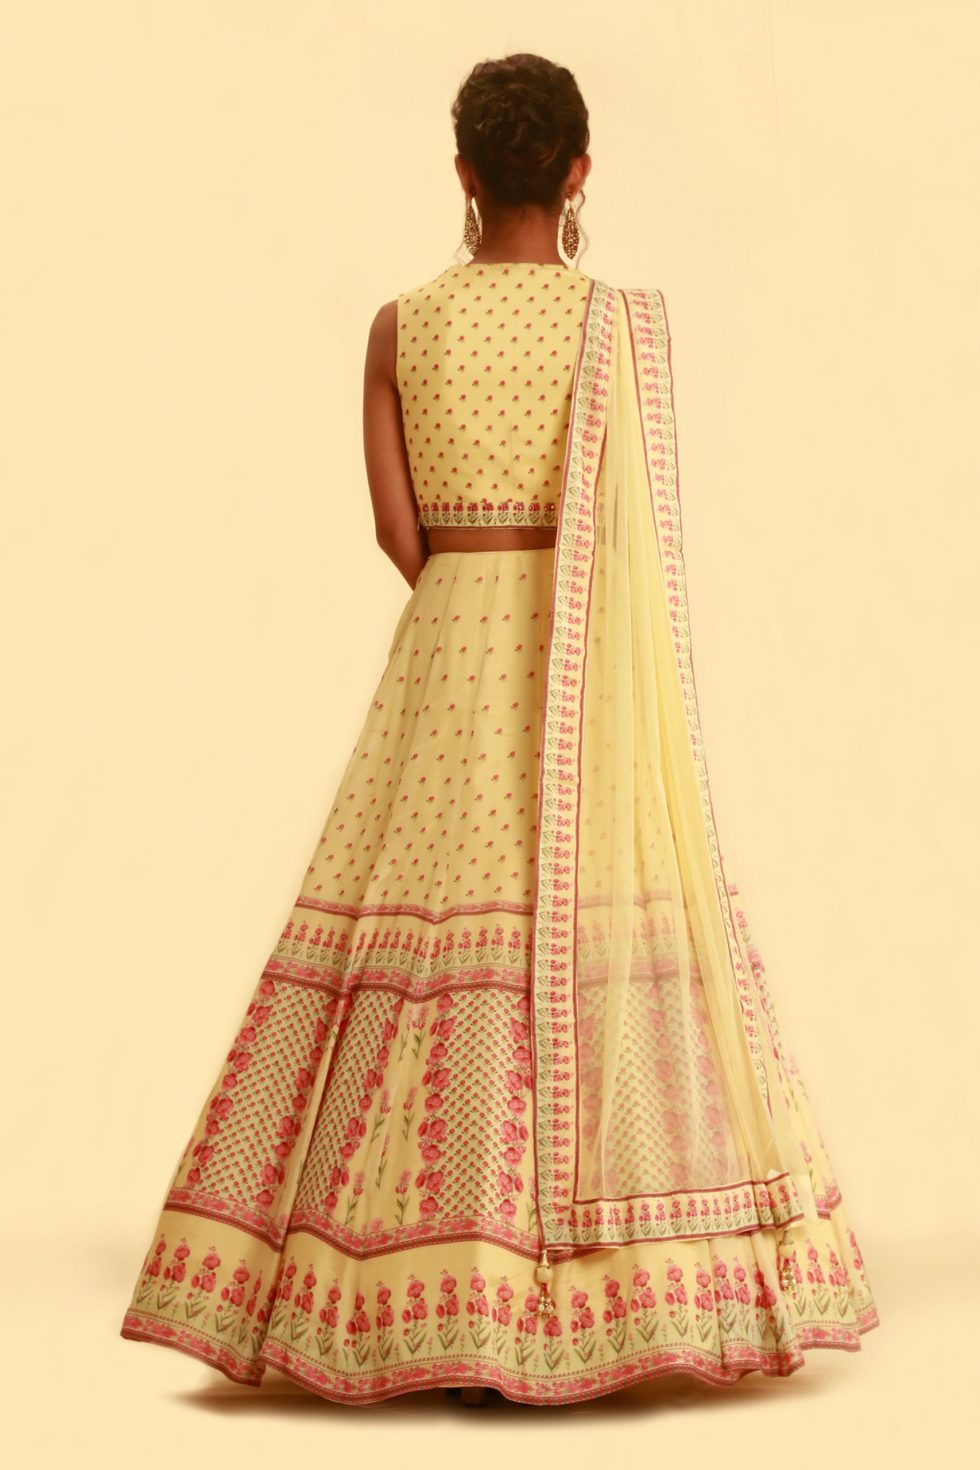 Lemon yellow printed lehenga set with matching dupatta and gold highlights